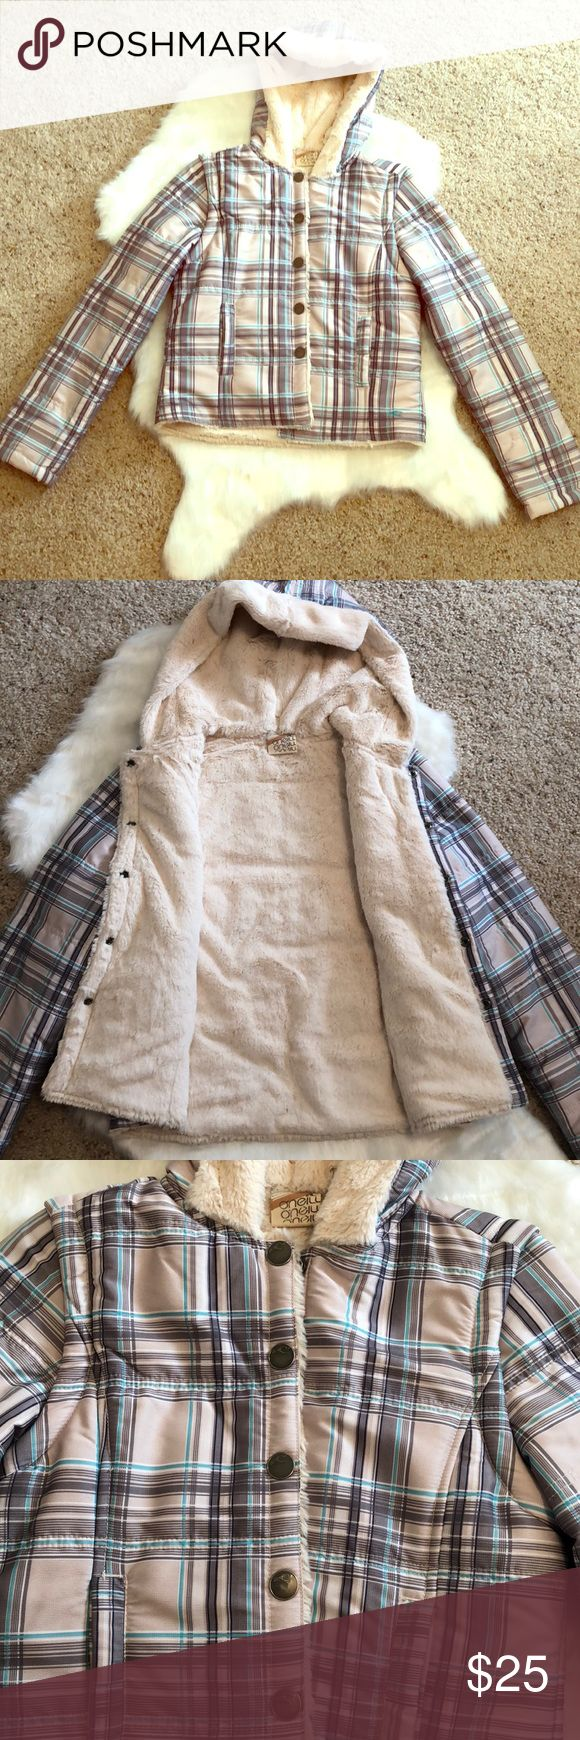 O'Neill plaid jacket/vest combo Like new! Brown, ran, and blue plaid, soft and cozy fur lined interior and hood lining! Snap button closure. The sleeves zip off to turn the jacket into a vest!  100% polyester O'Neill Jackets & Coats